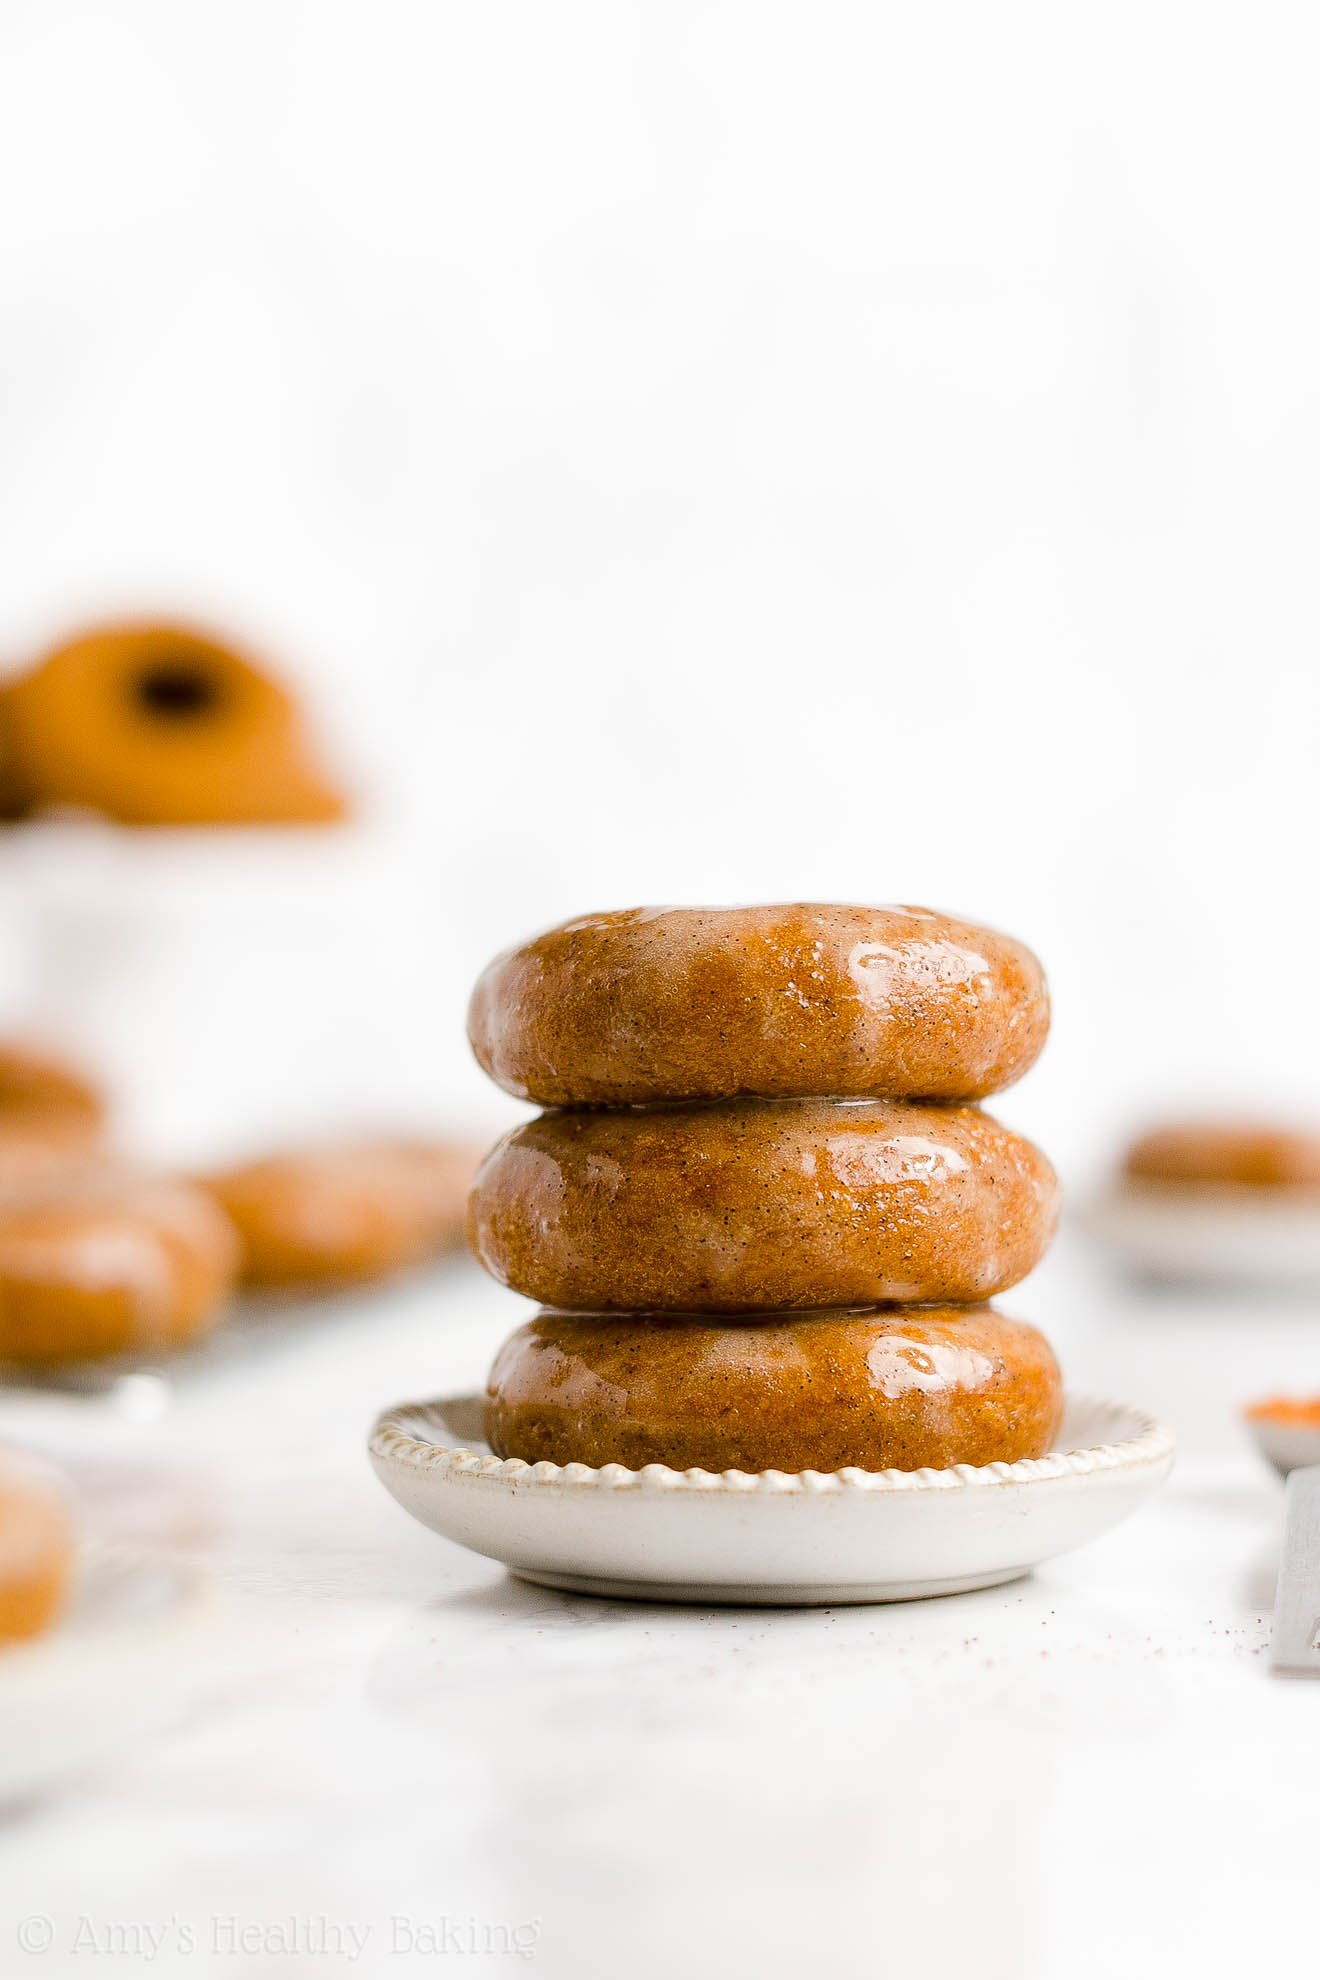 BEST EVER Healthy Gluten Free Baked Pumpkin Donuts with Sugar Free Glaze